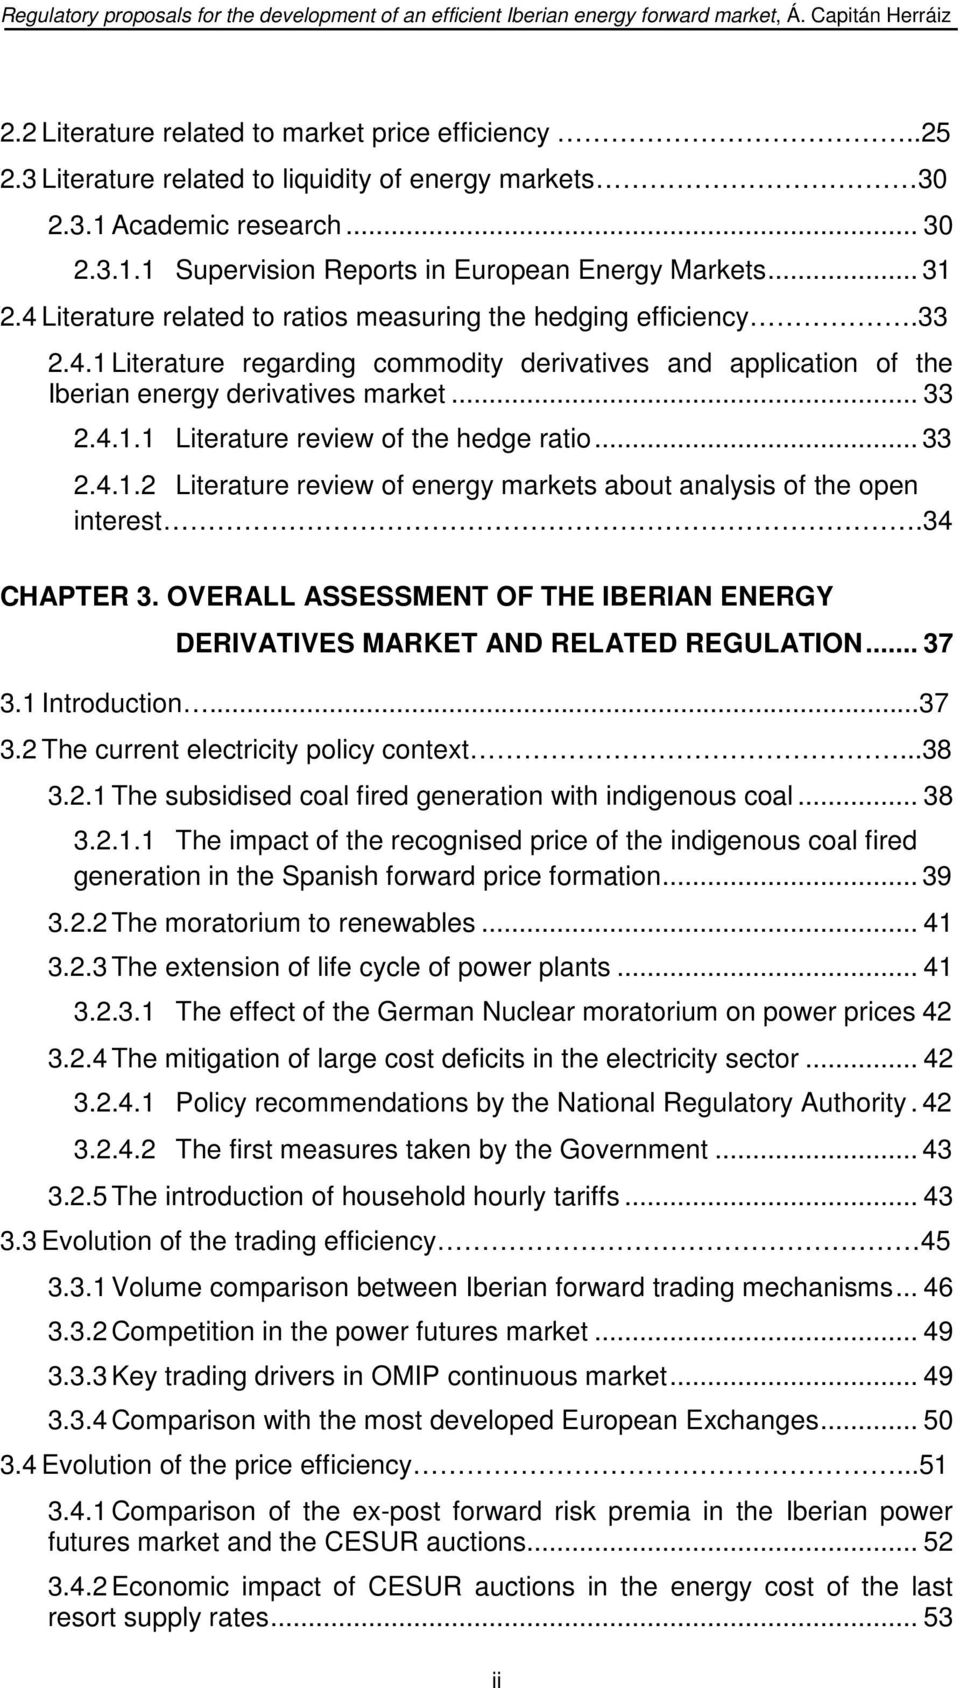 .. 33 2.4.1.2 Literature review of energy markets about analysis of the open interest.34 CHAPTER 3. OVERALL ASSESSMENT OF THE IBERIAN ENERGY DERIVATIVES MARKET AND RELATED REGULATION... 37 3.